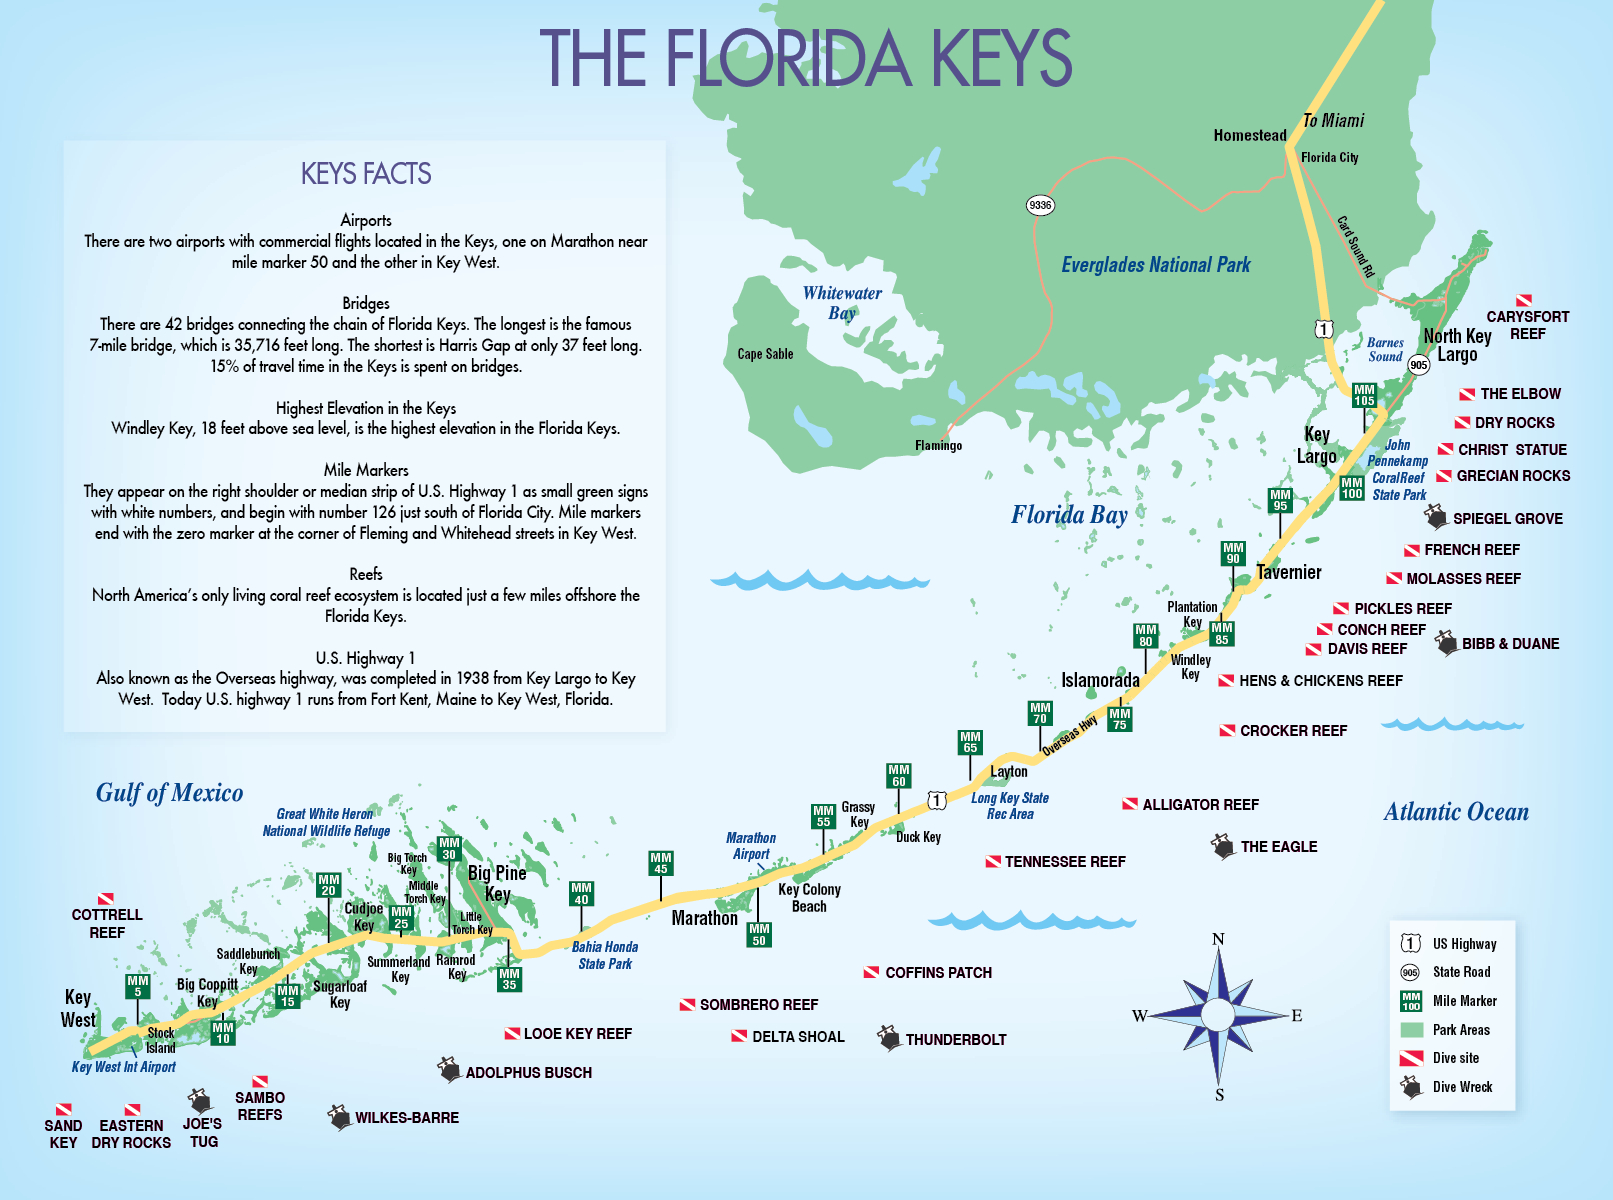 Keys & Key West Map Pdfs - Destination - Detailed Map Of Florida Keys